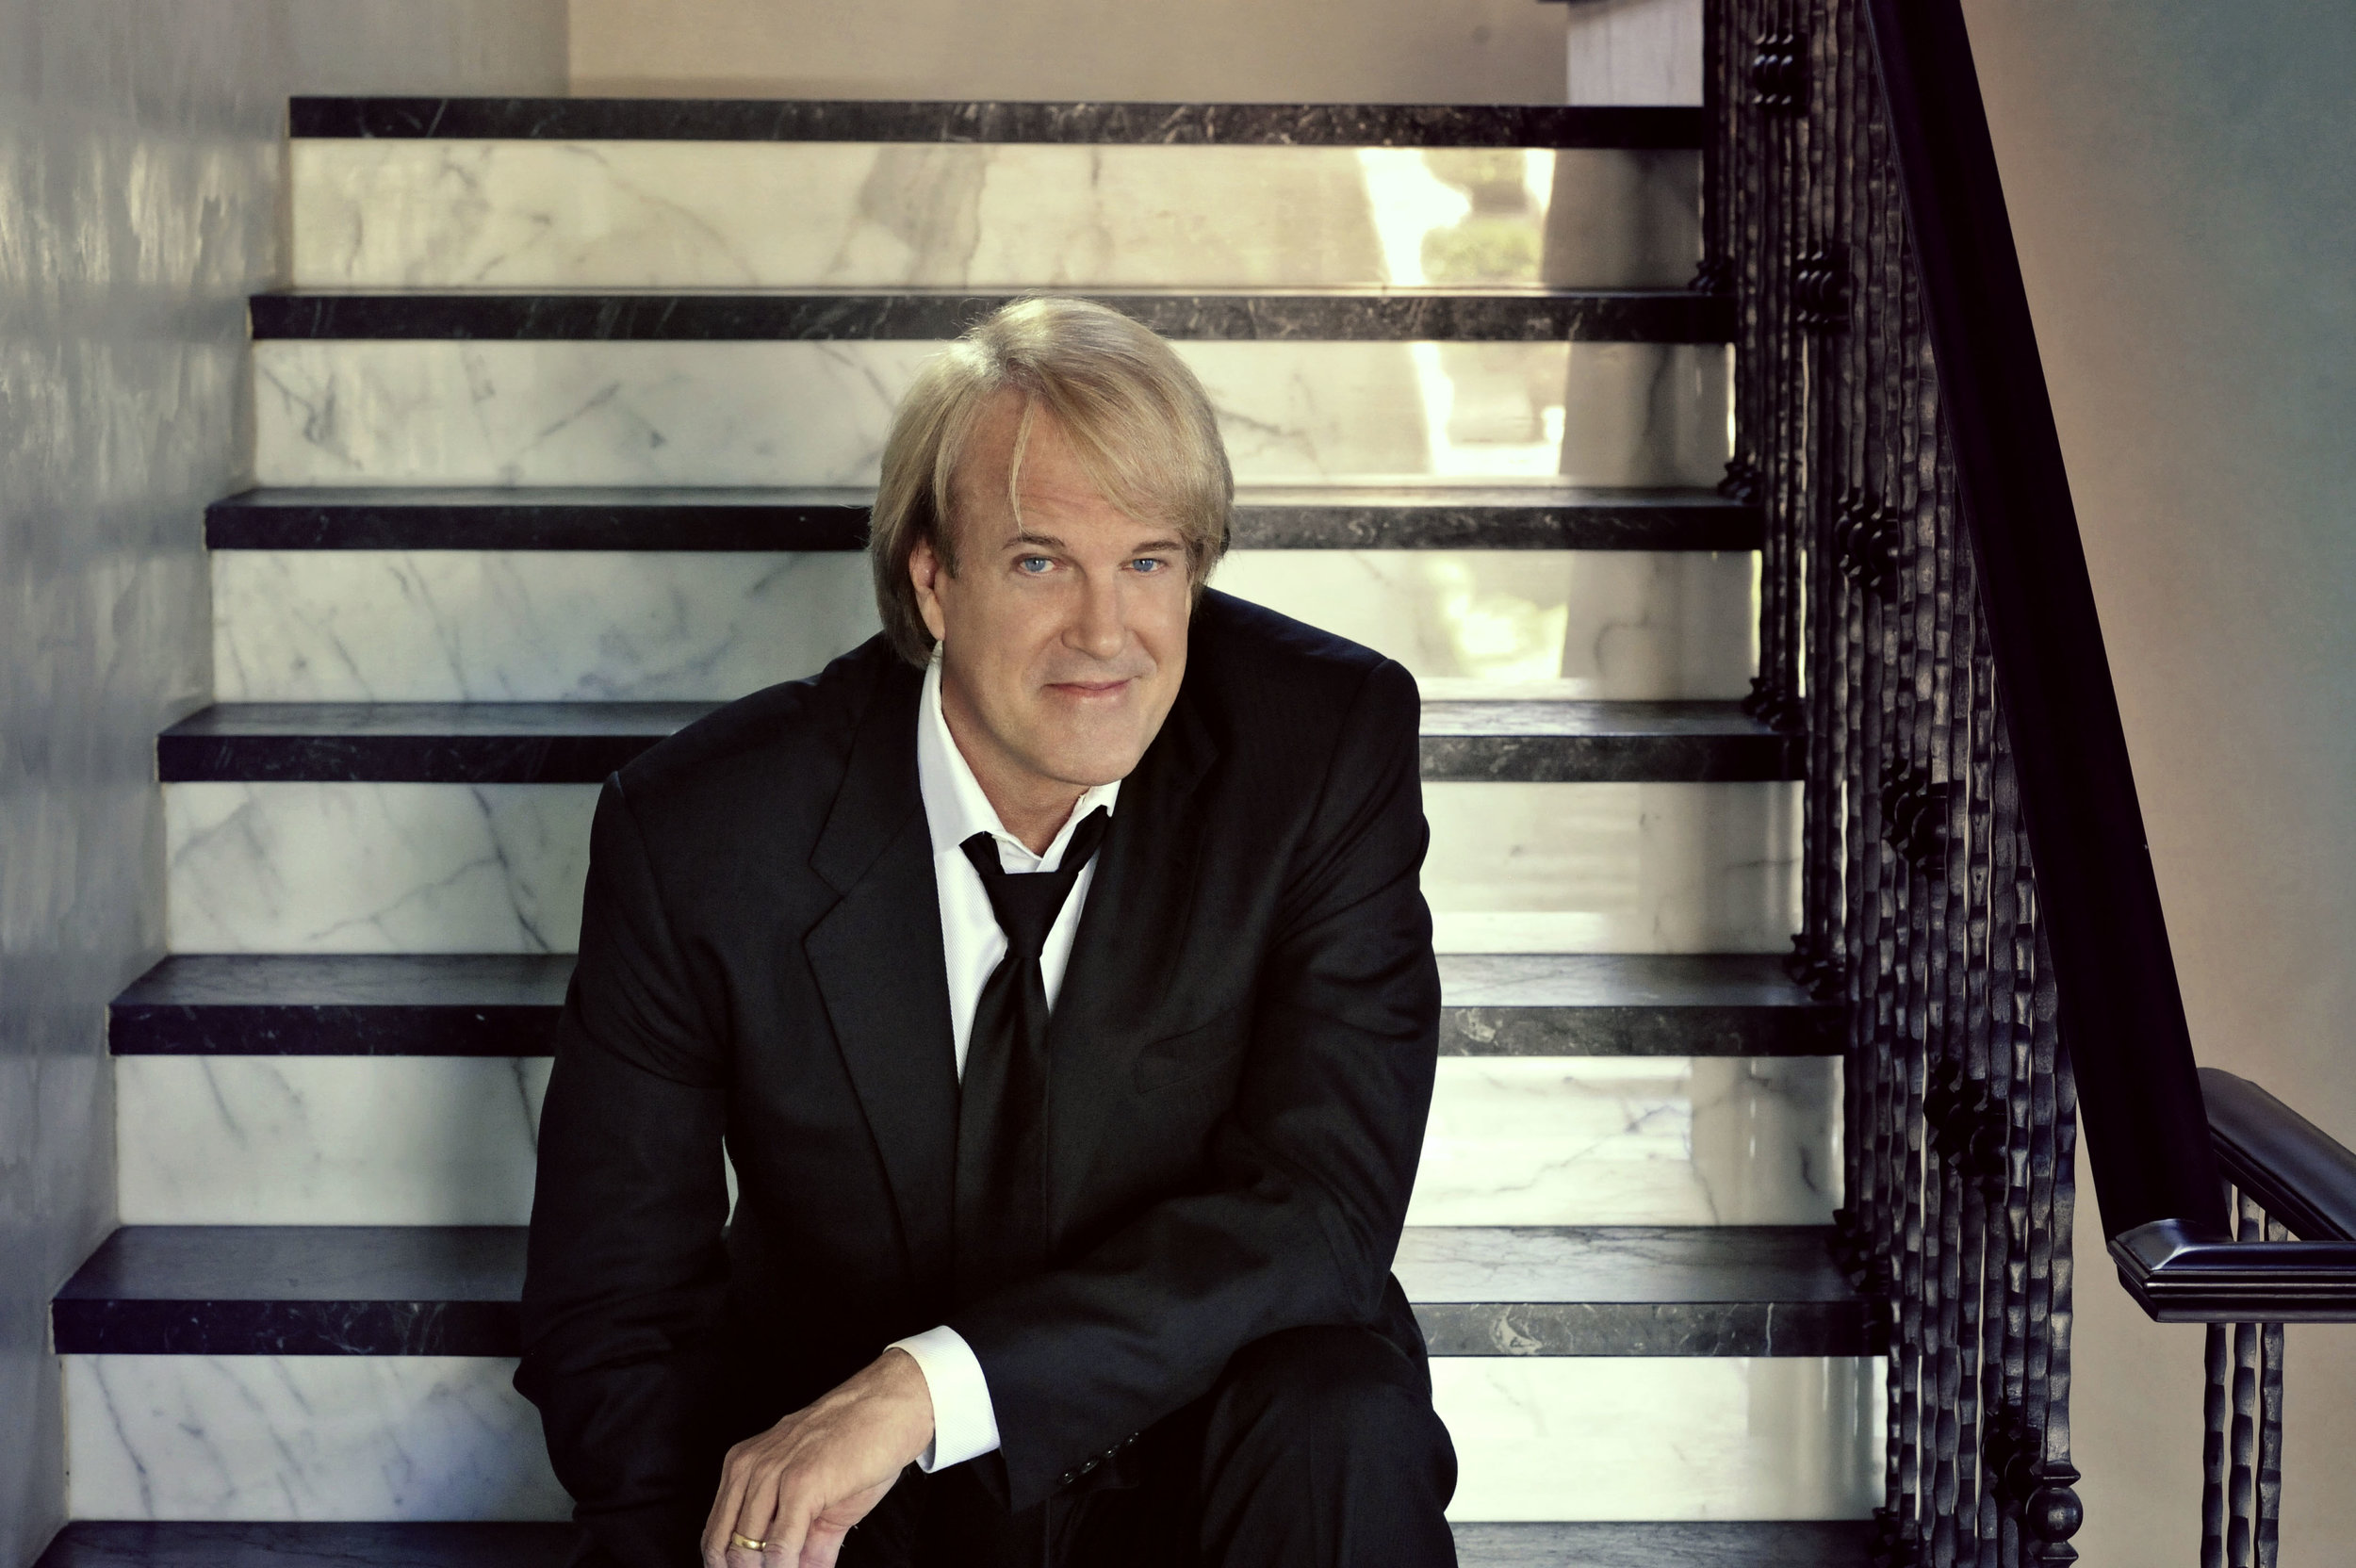 John Tesh is a composer, musician and broadcaster who has earned countless awards and honors including  six music Emmys and three gold records. He's also headlined multiple PBS specials and sold 8 million records. (Photo: John Tesh)